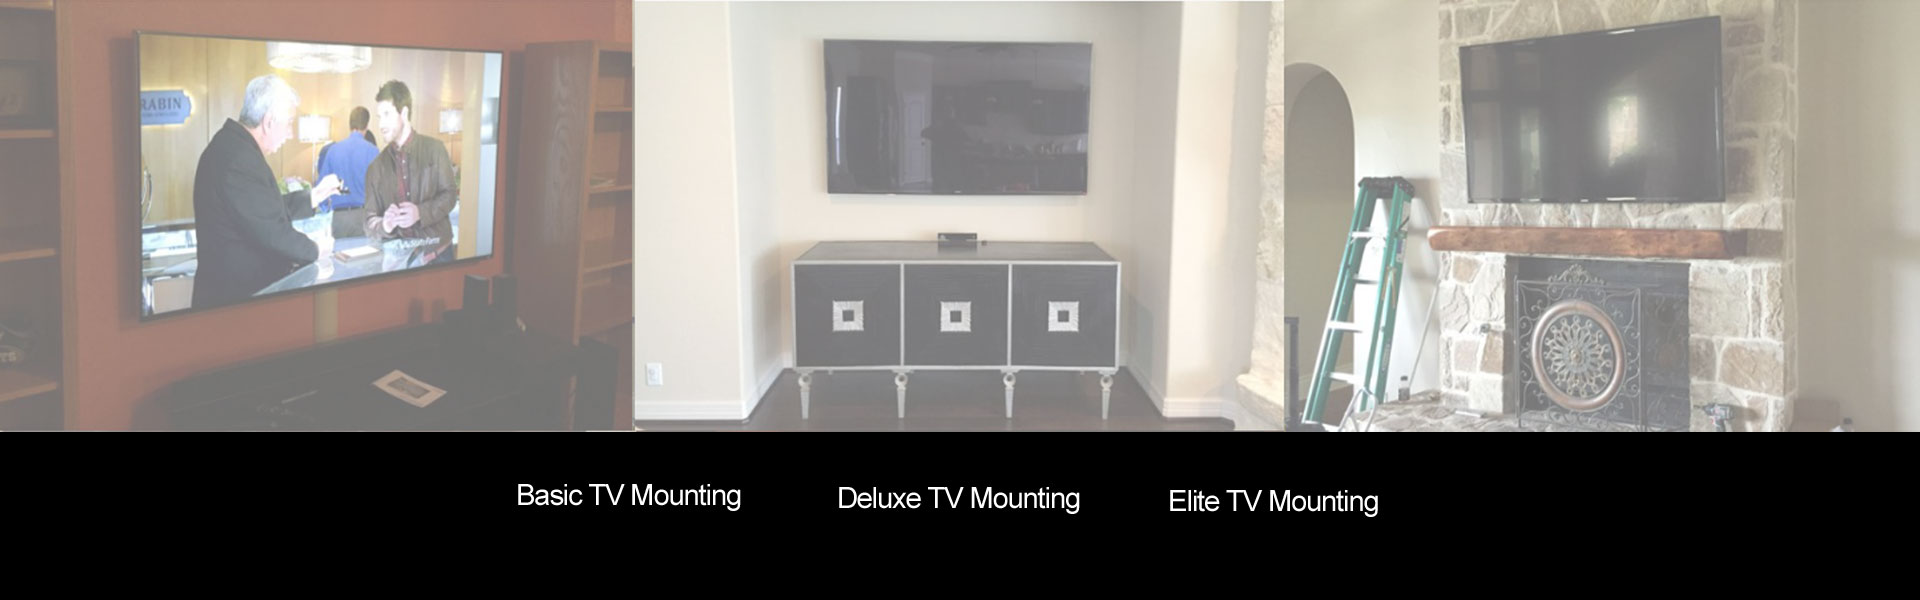 TV-Mounting-Banner-1